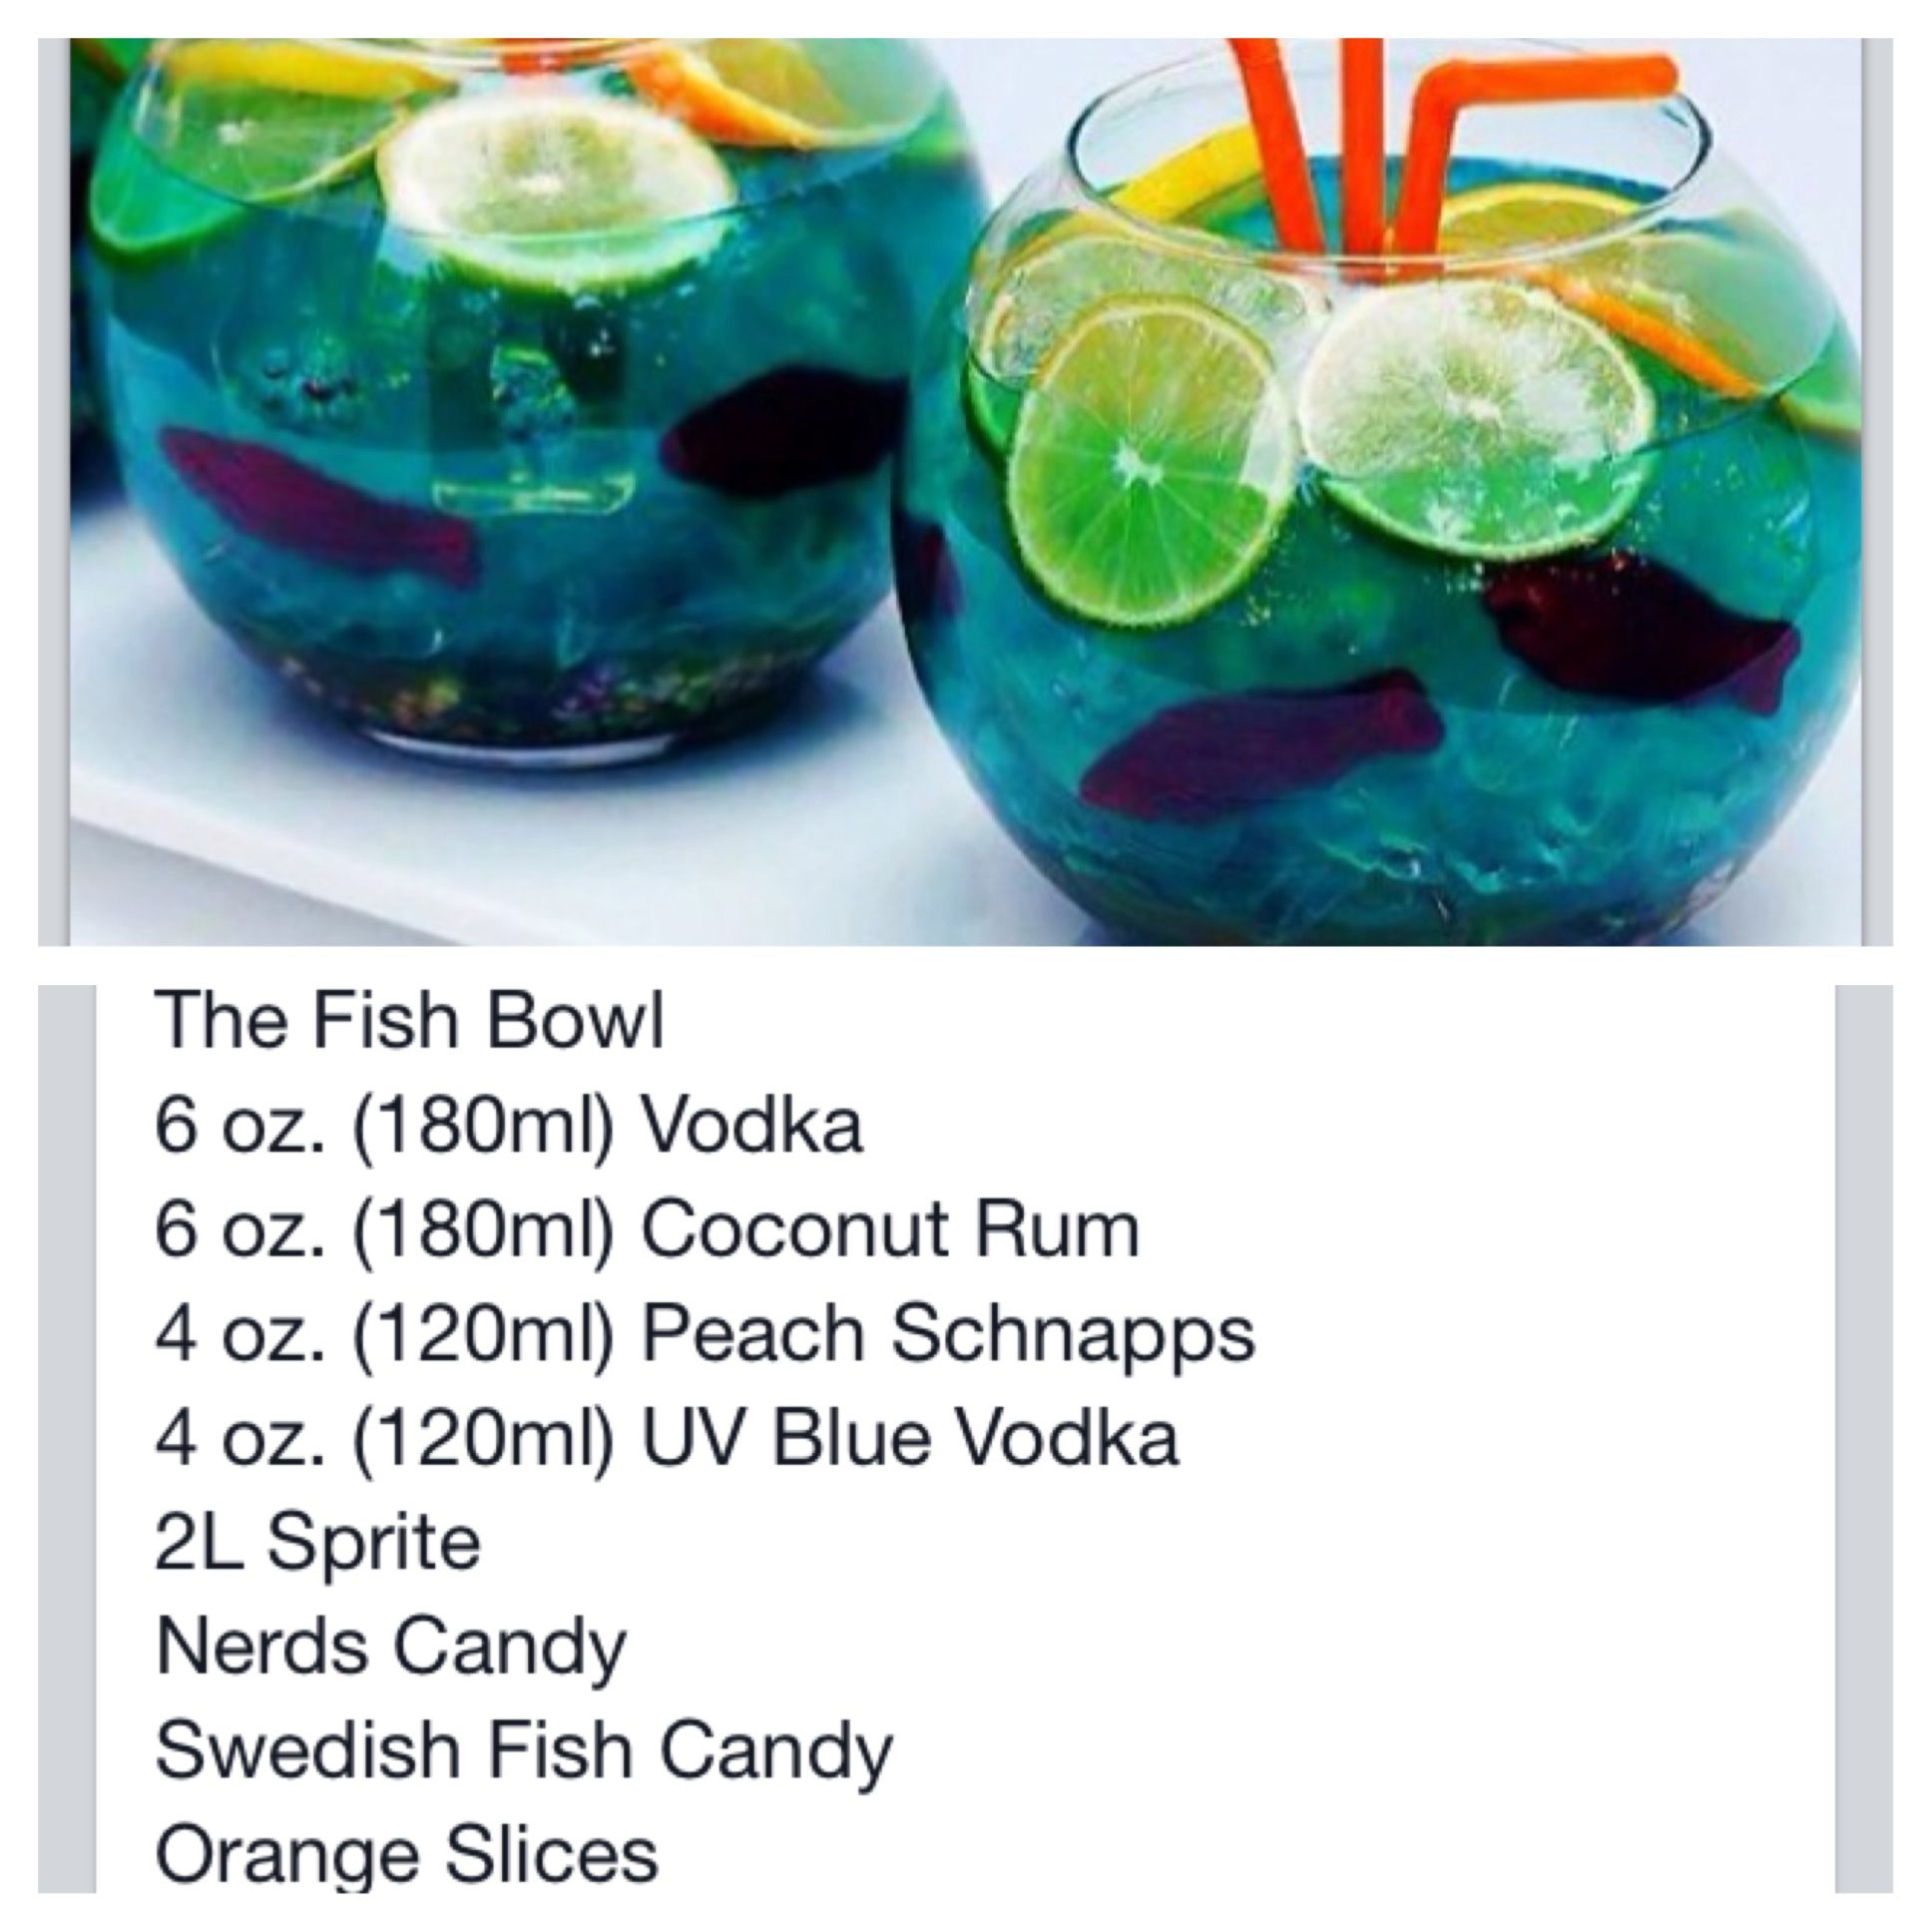 The fish bowl drink recipies and cooking ideas pinterest for Restaurants with fish bowl drinks near me